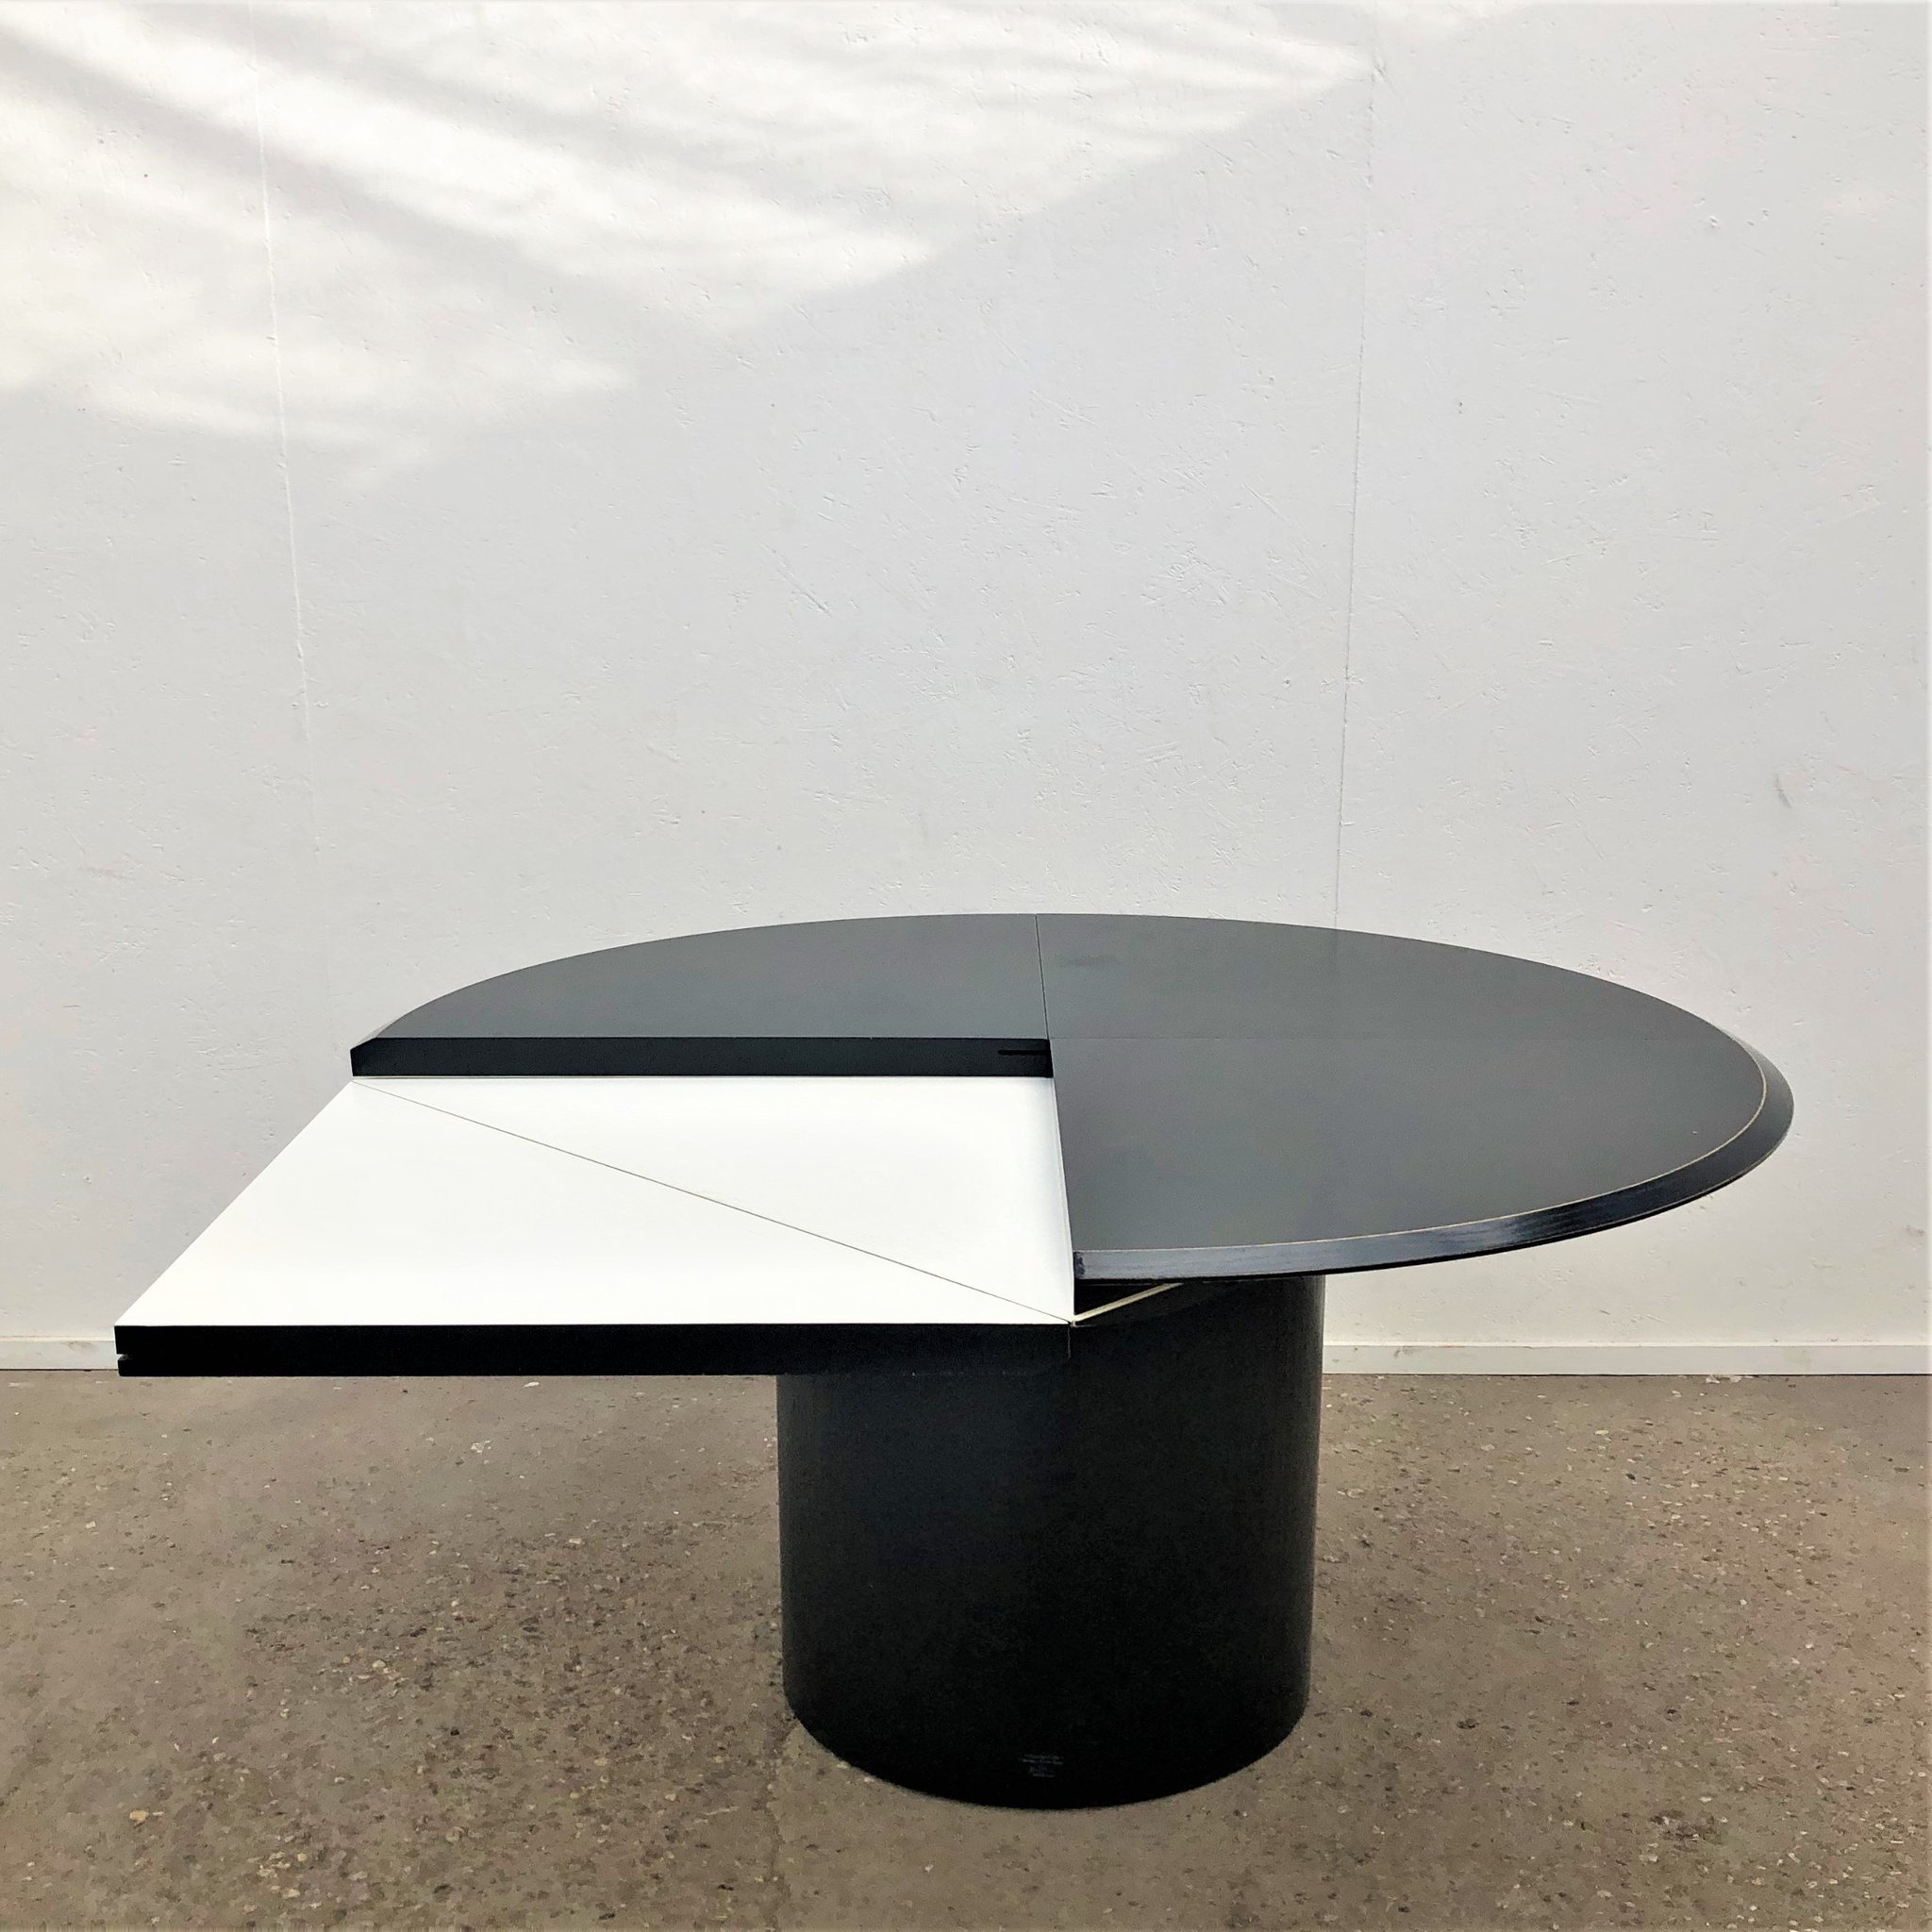 Quadrondo Dining Table By Erwin Nagel For Rosenthal 1980s 146012